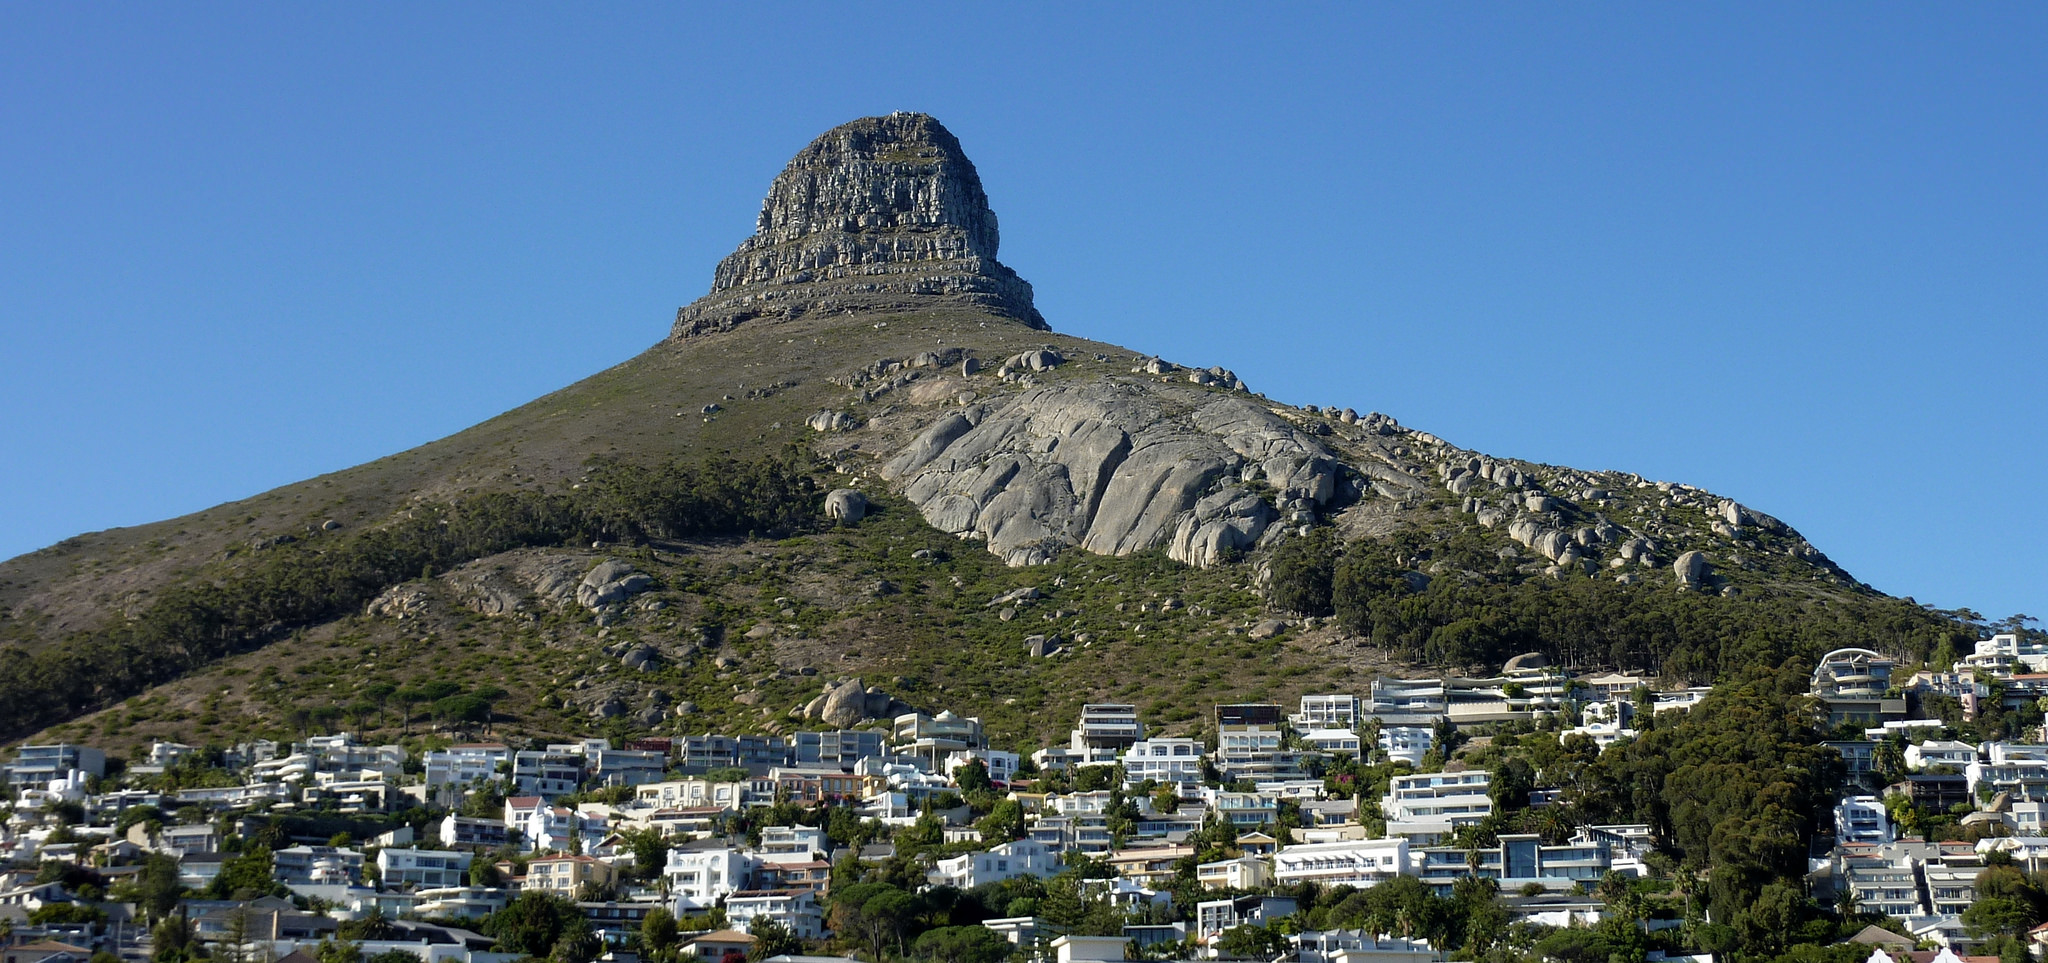 Lions-Head-Cape-Town-South-Africa-1